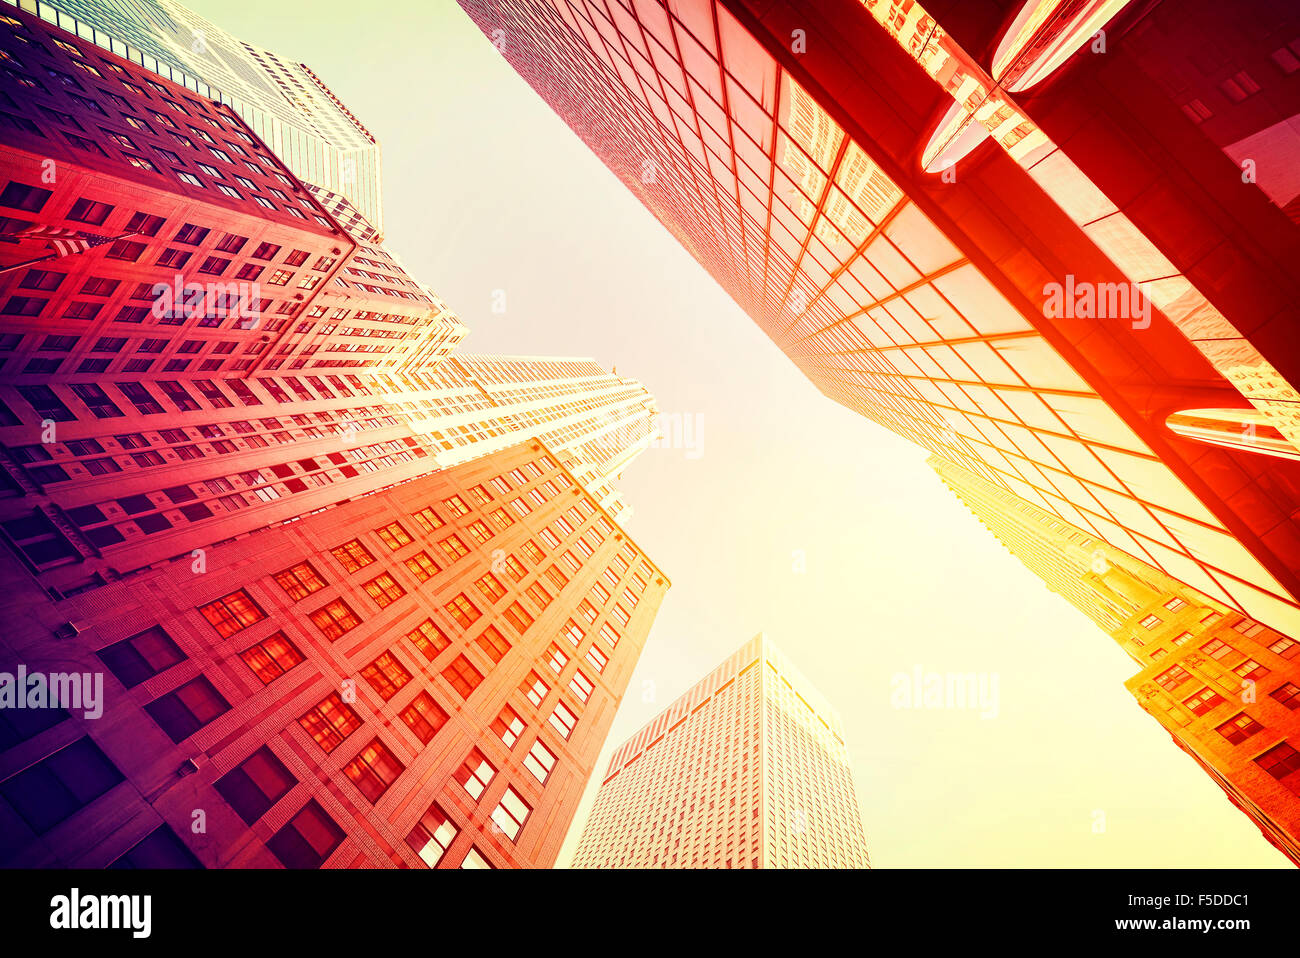 Vintage style skyscrapers in Manhattan at sunset, NYC, USA. - Stock Image